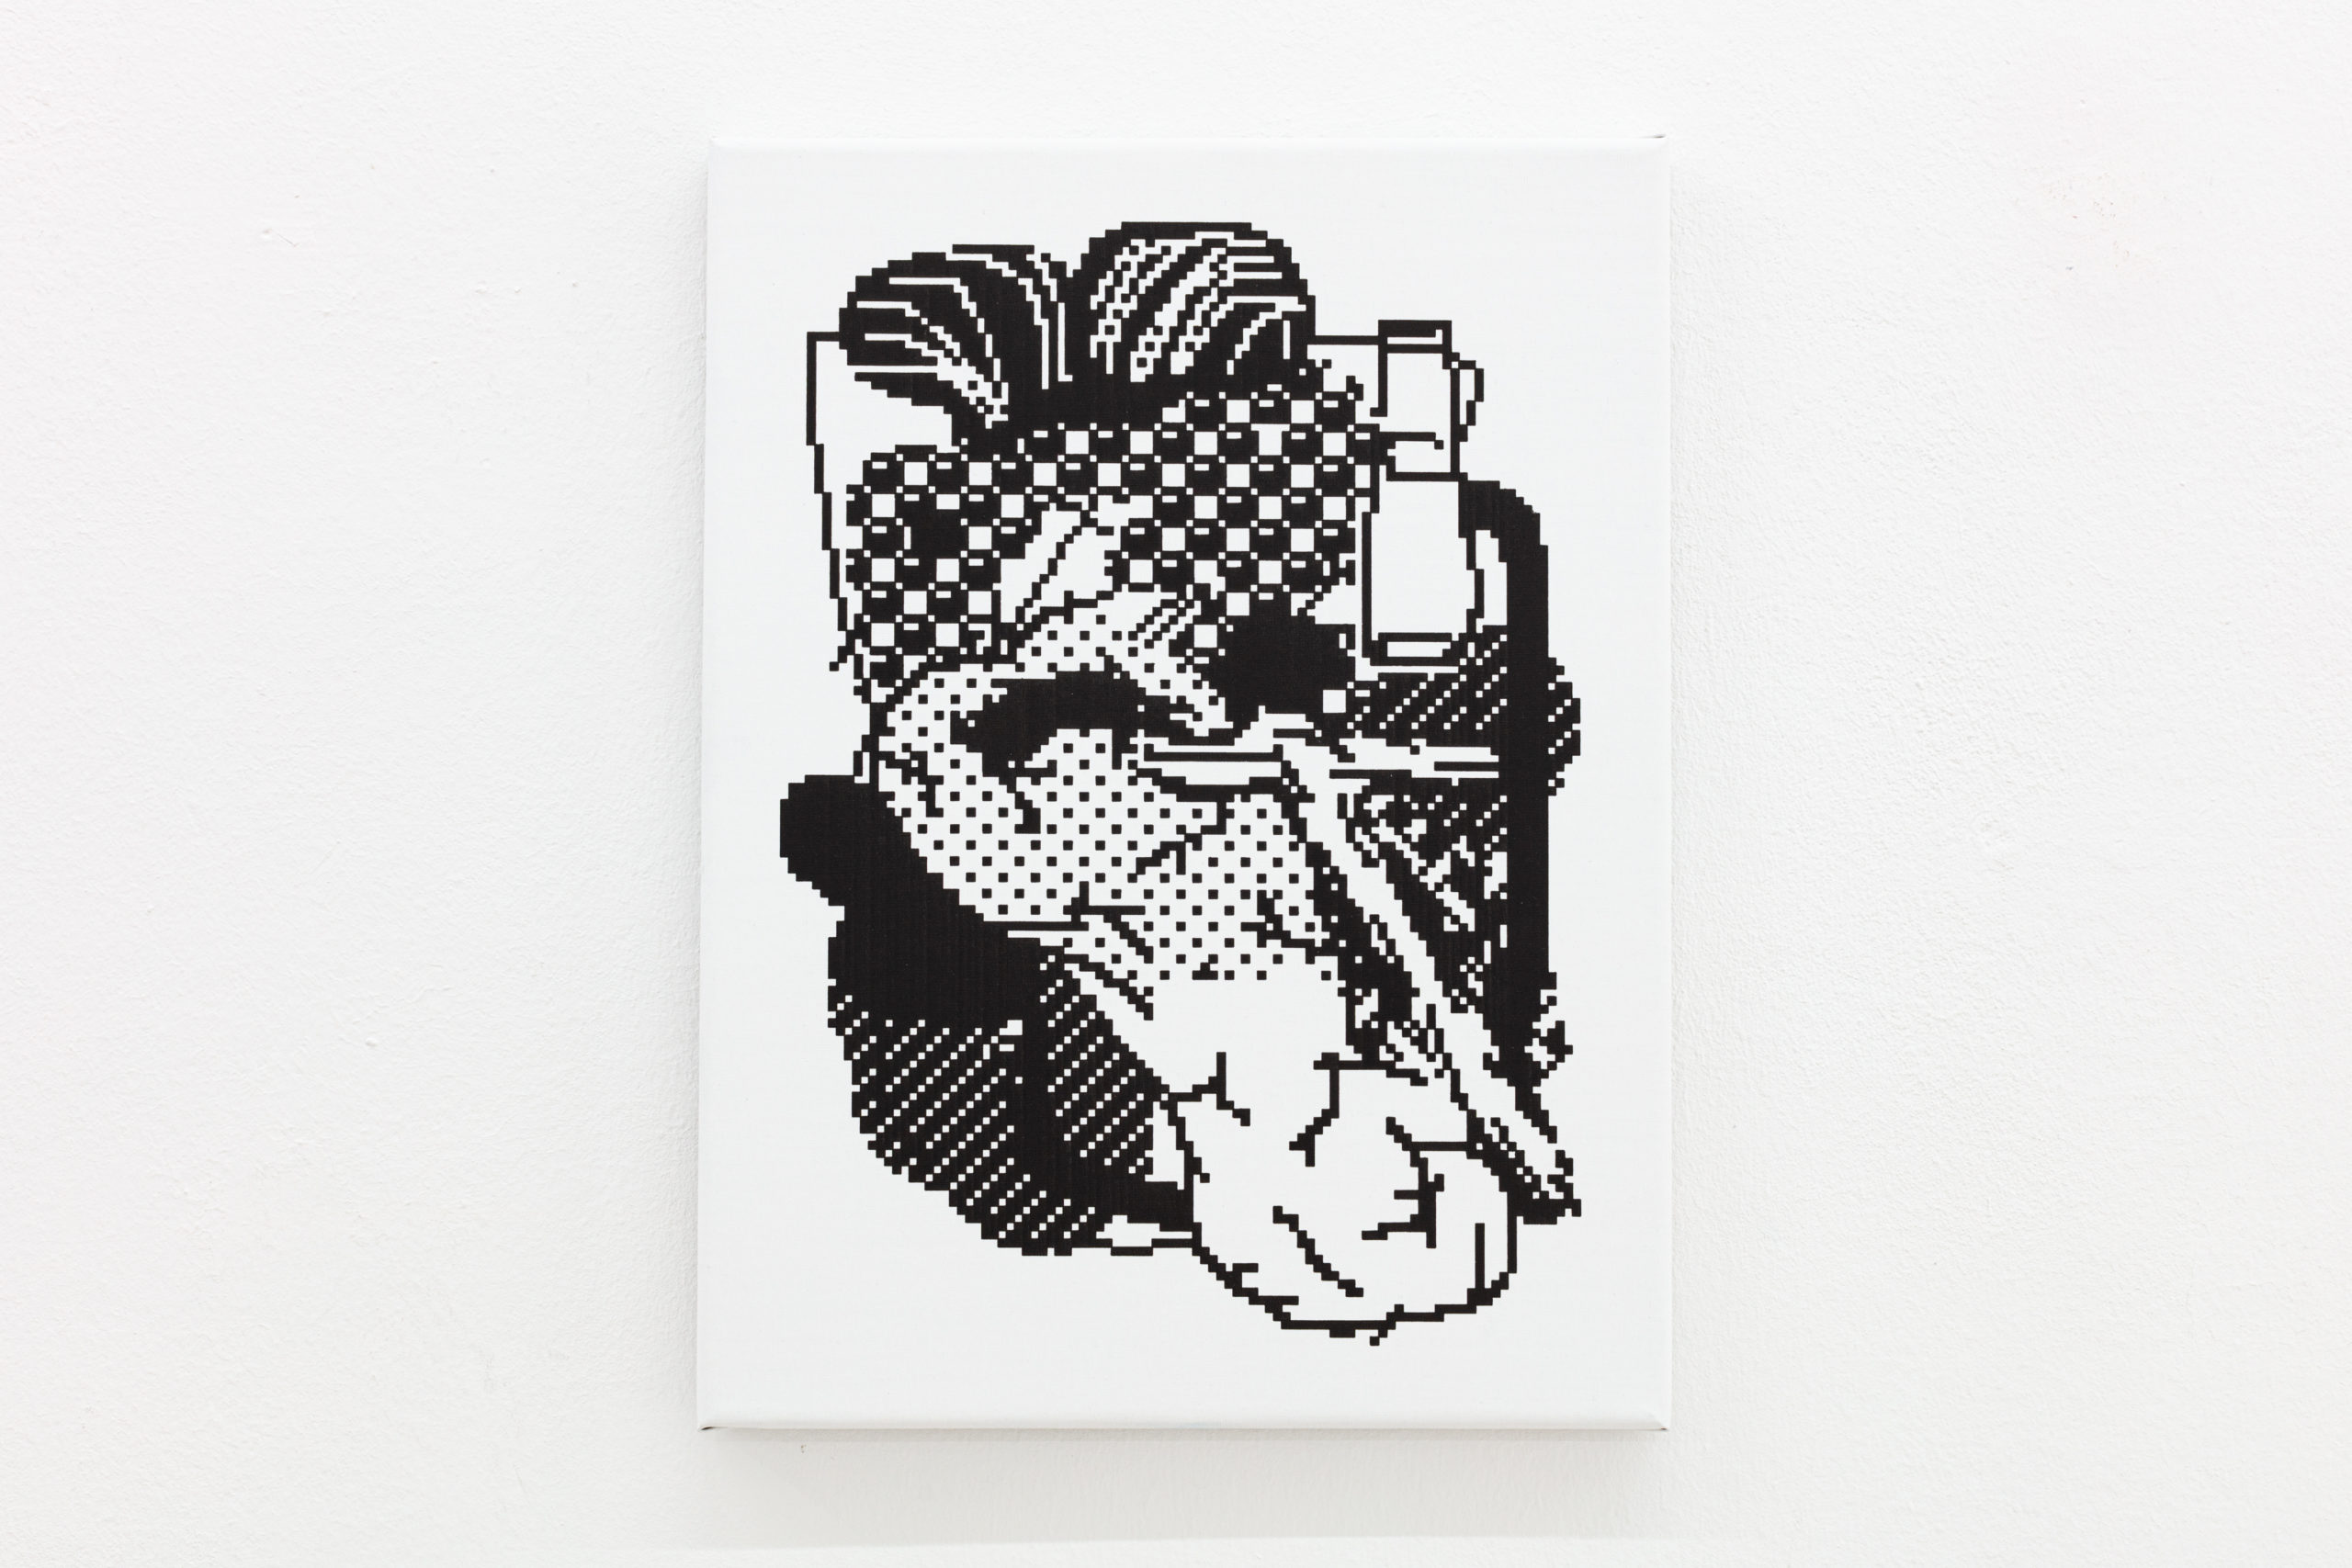 Arno Beck, Untitled, plotter drawing, ink on canvas, 30 x 40 cm, 2020